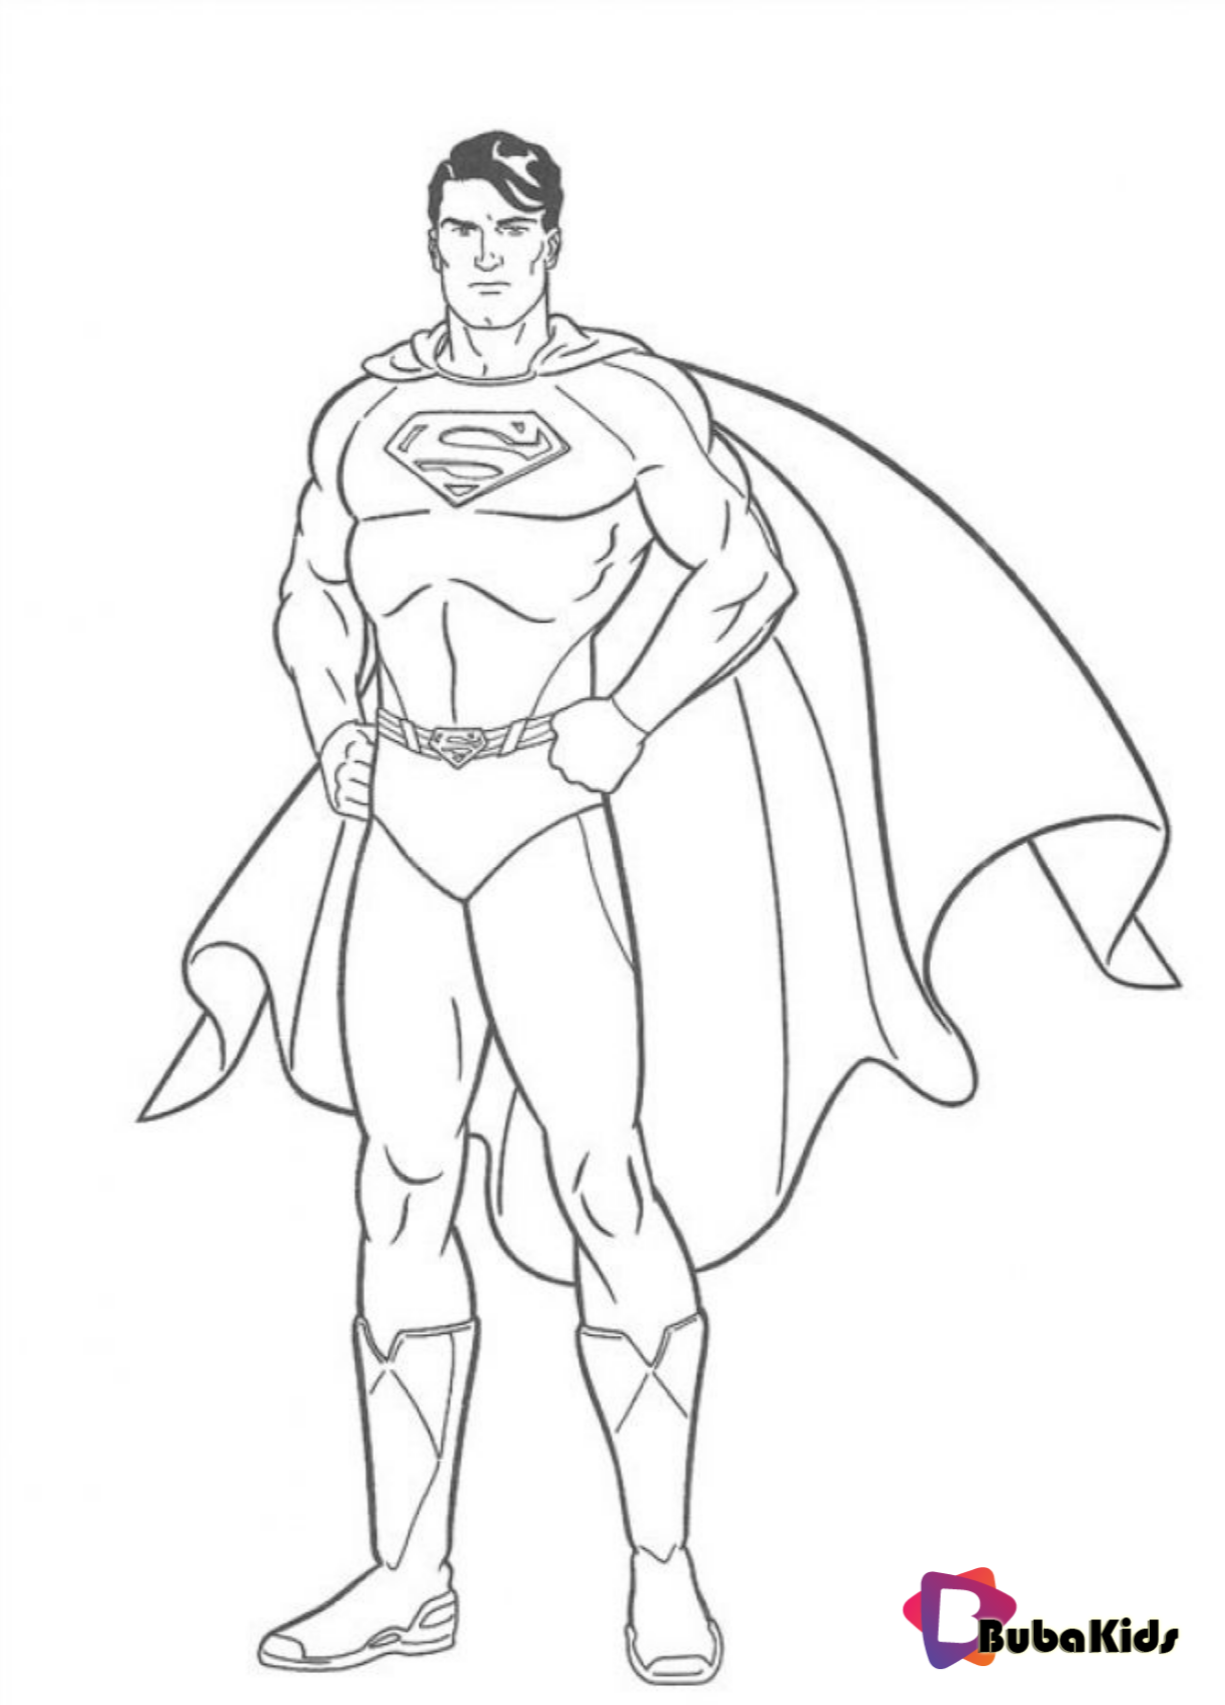 Printable Superman Coloring Pages On Bubakids Com Superhero Superman Superhero Superman Avengers Coloring Pages Avengers Coloring Superman Coloring Pages